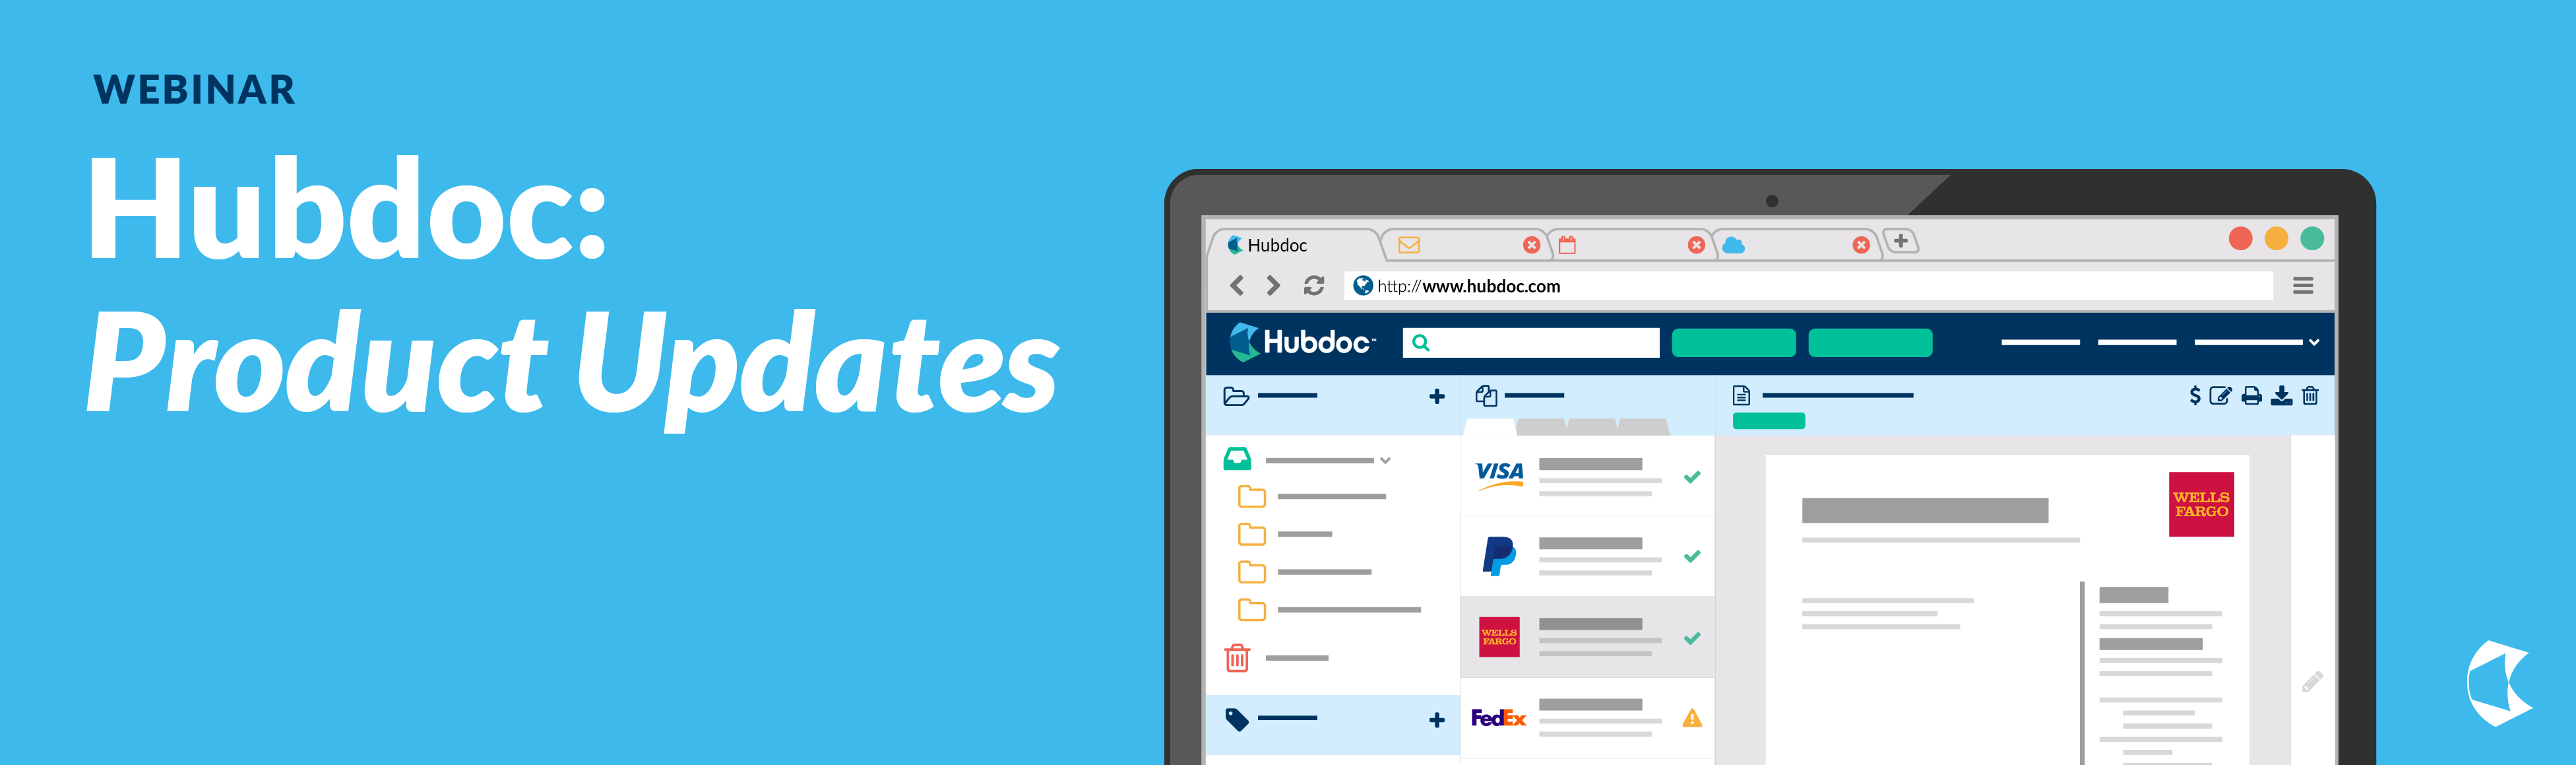 Hubdoc Product Update Webinar